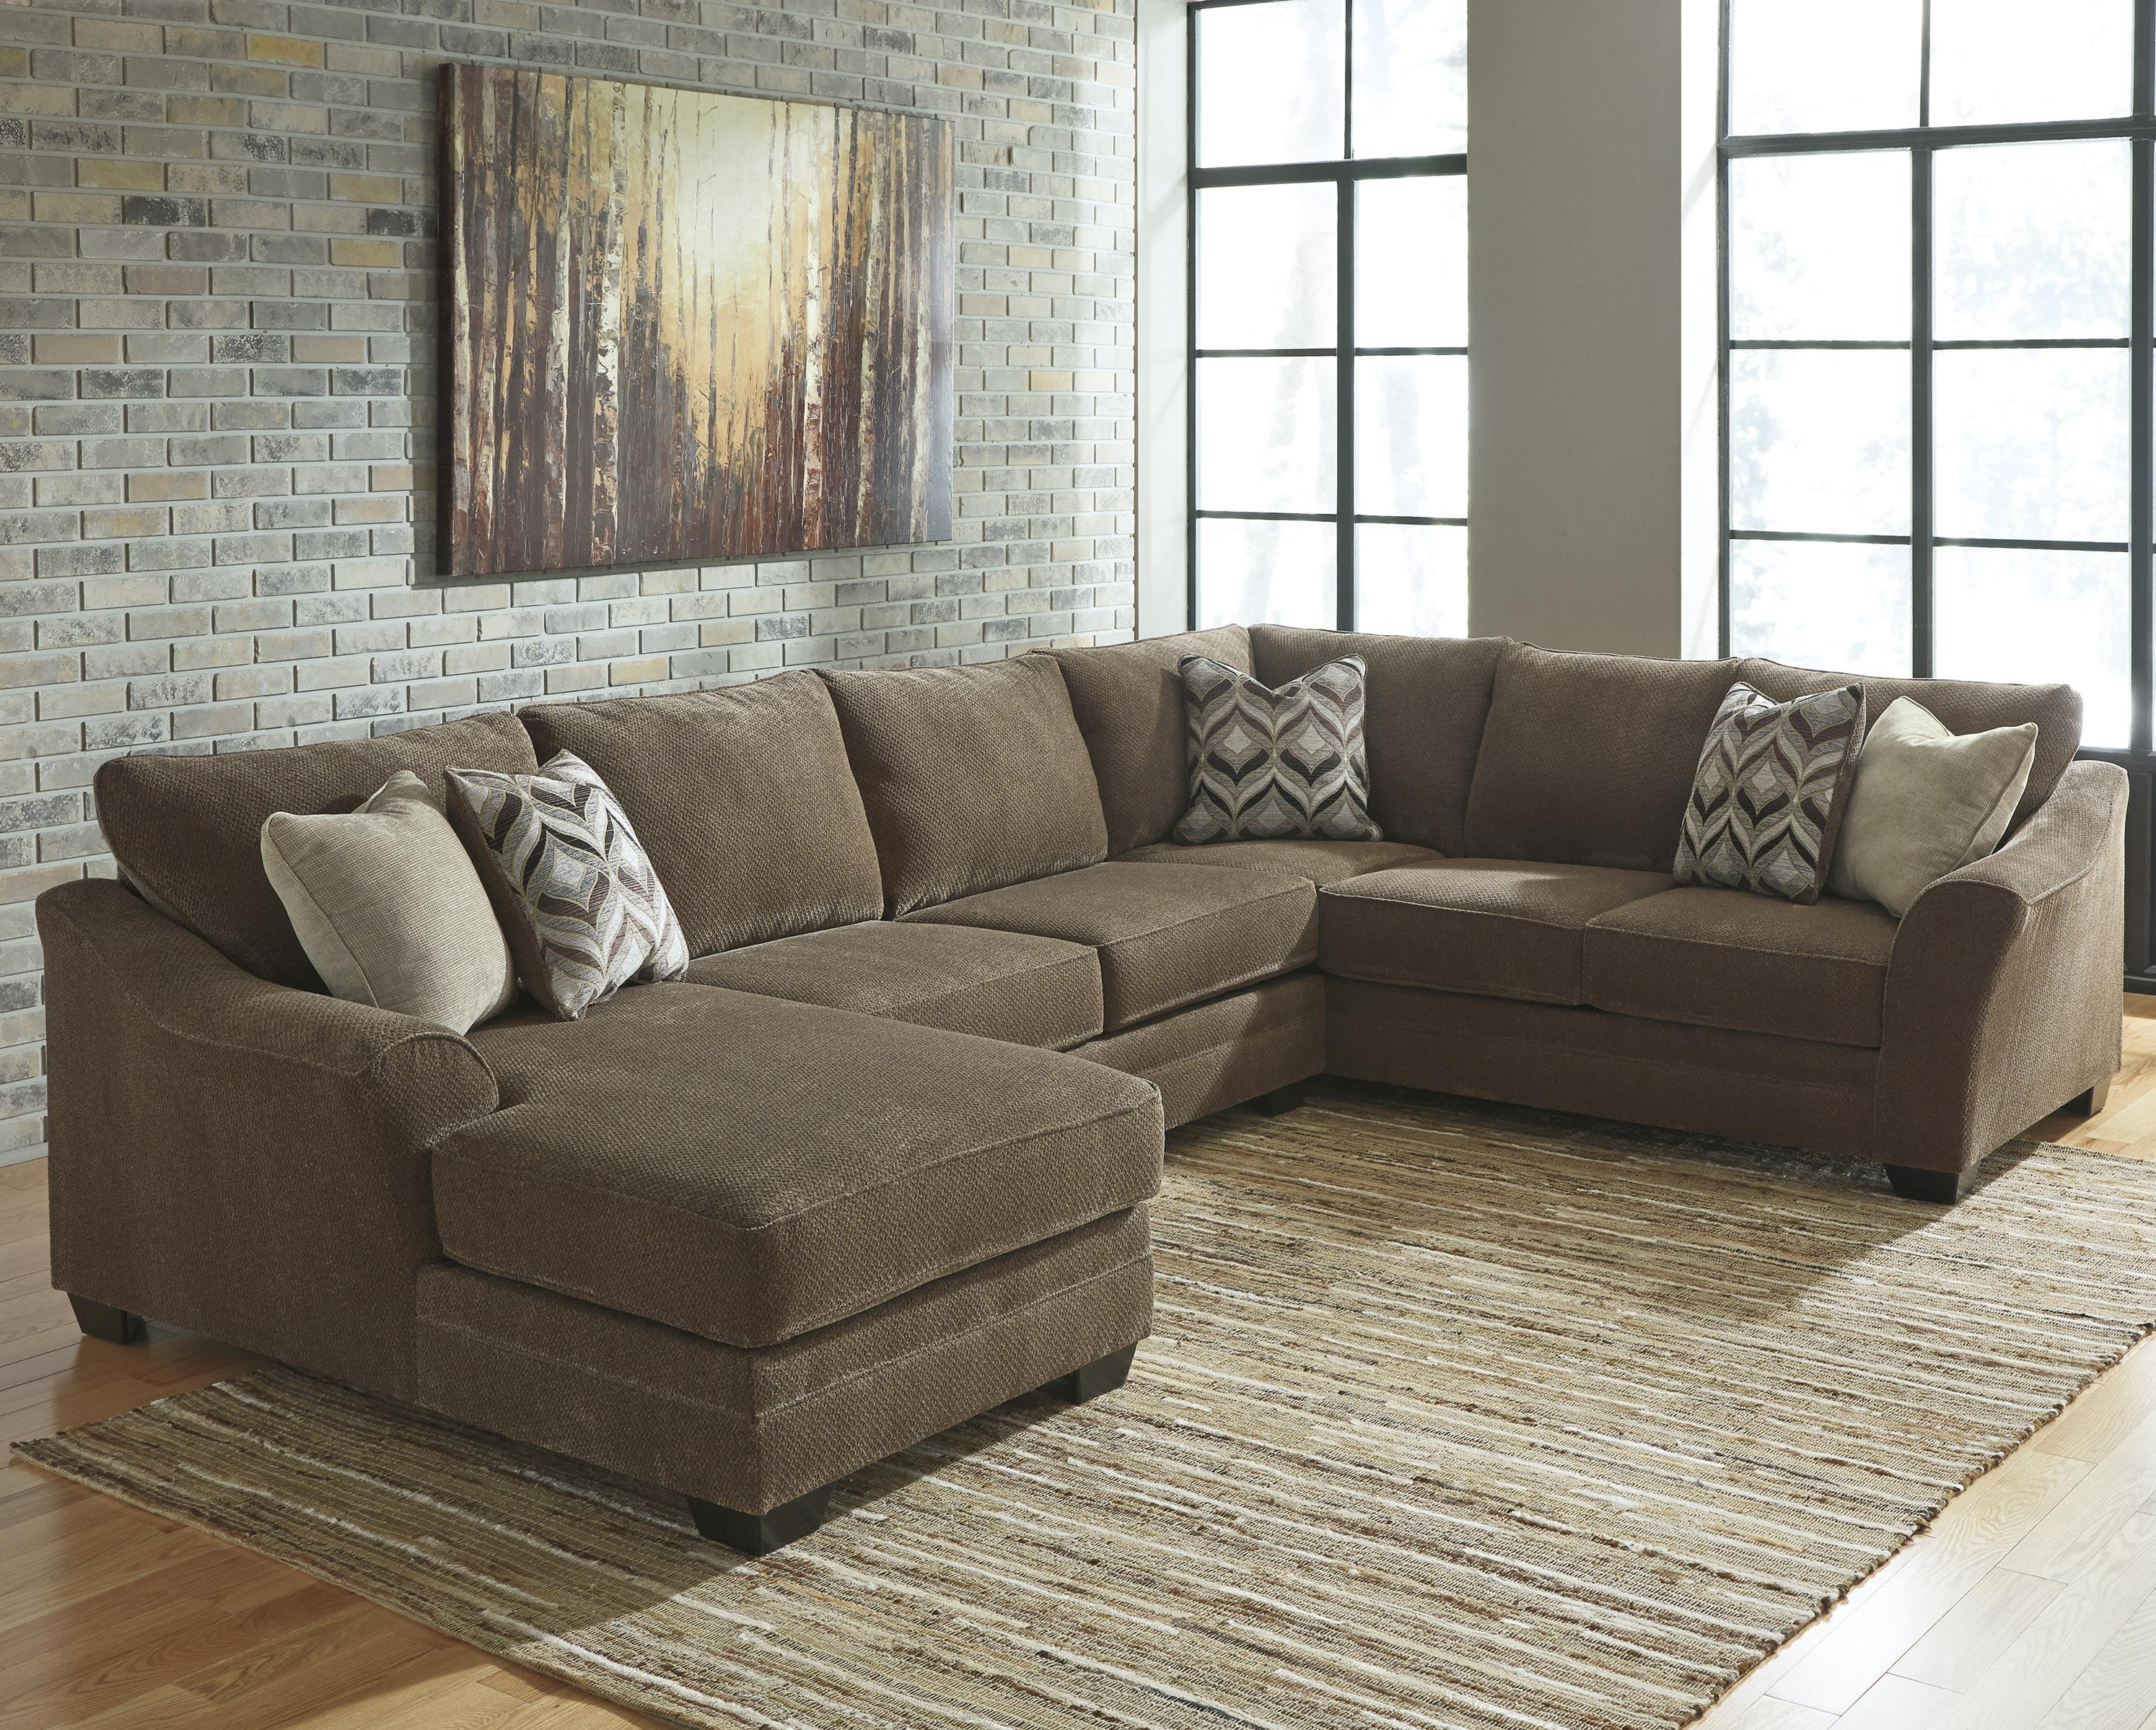 3 Piece Sectional – Locsbyhelenelorasa Regarding Well Known Malbry Point 3 Piece Sectionals With Laf Chaise (View 3 of 20)